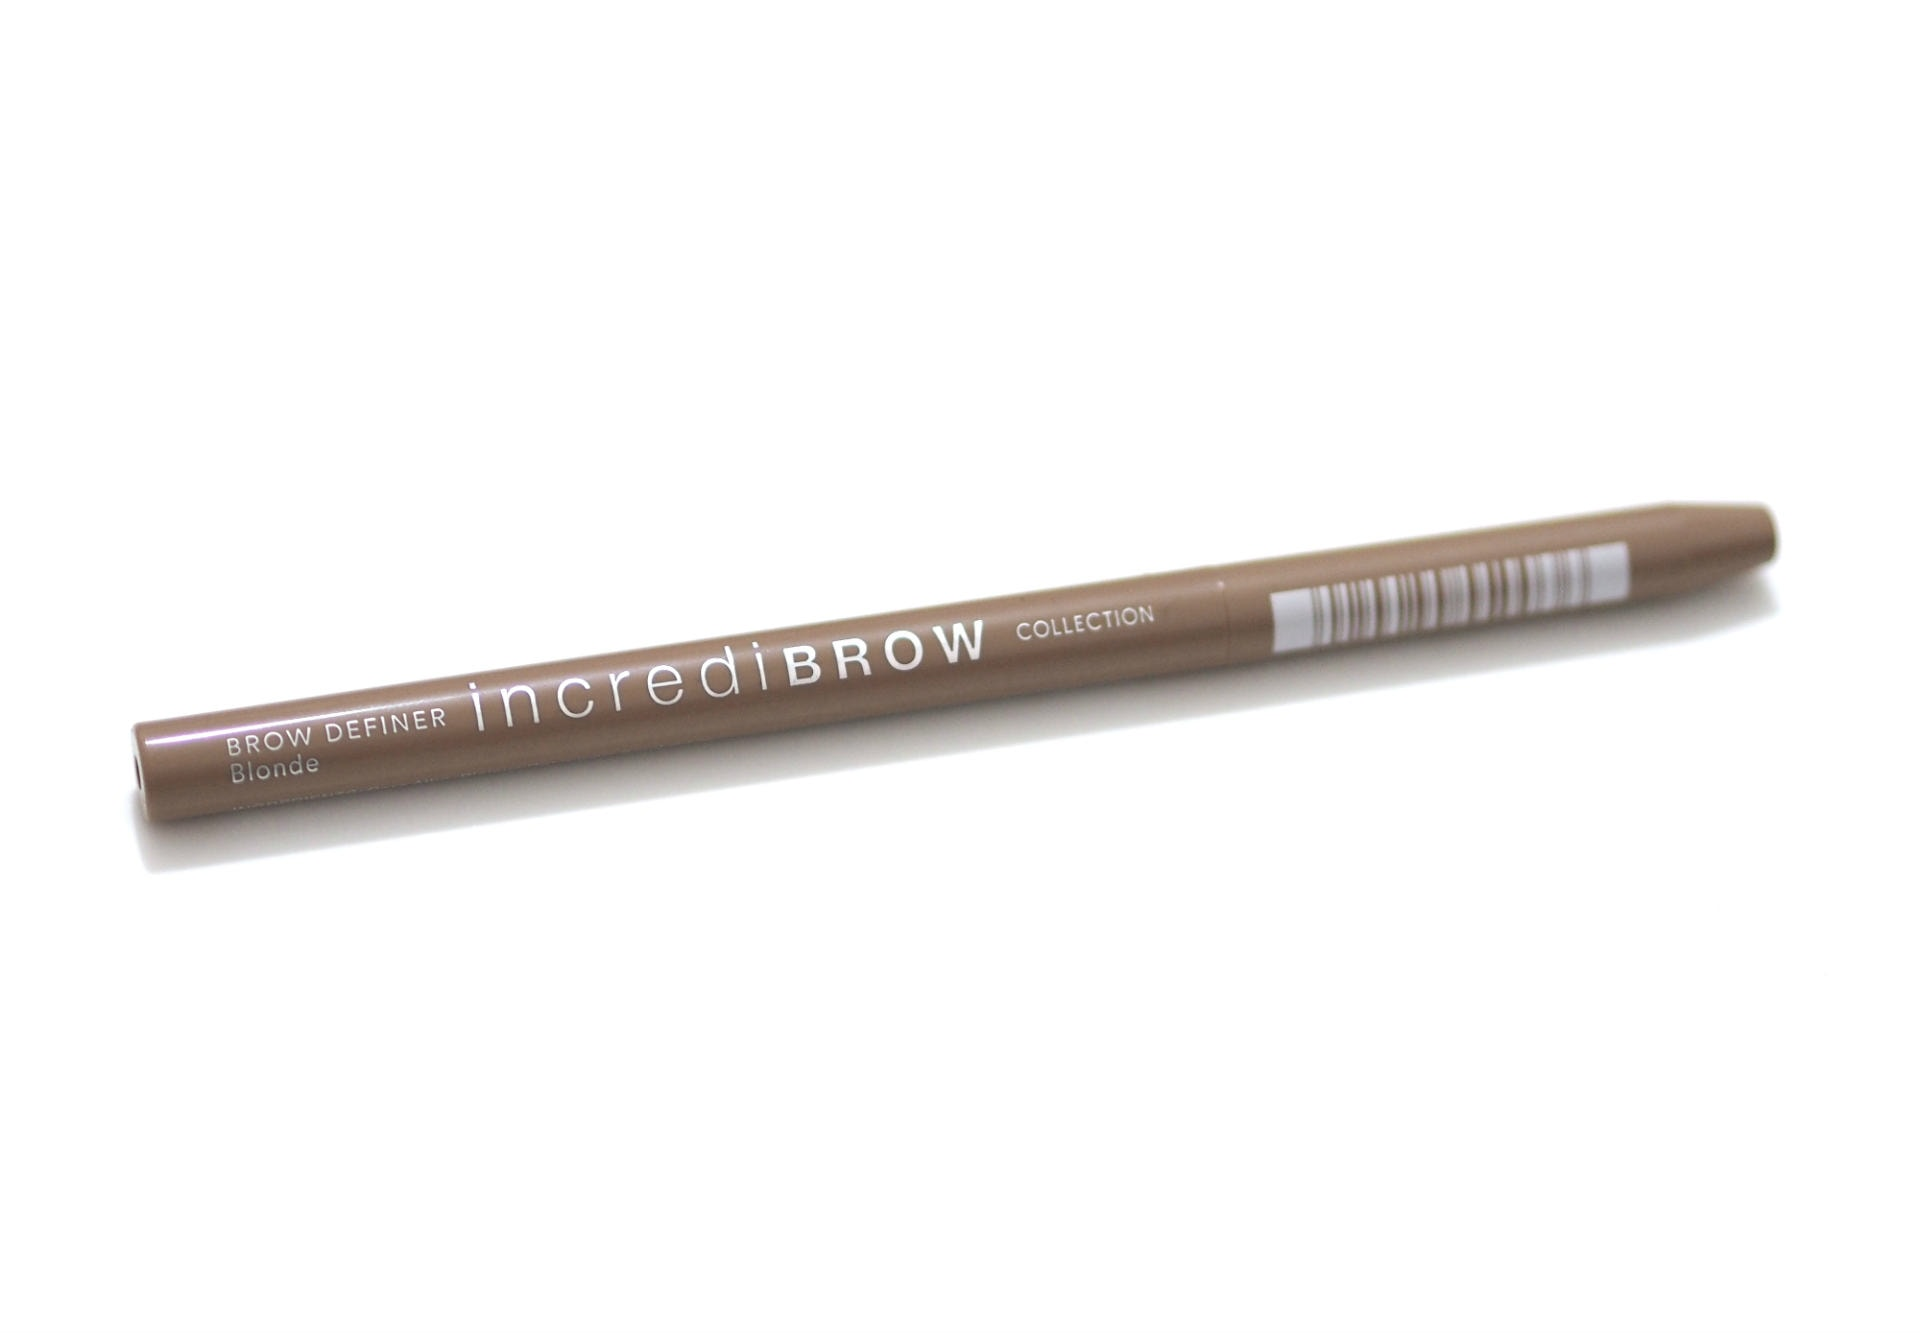 Collection IncrediBROW Collection Review / Swatches